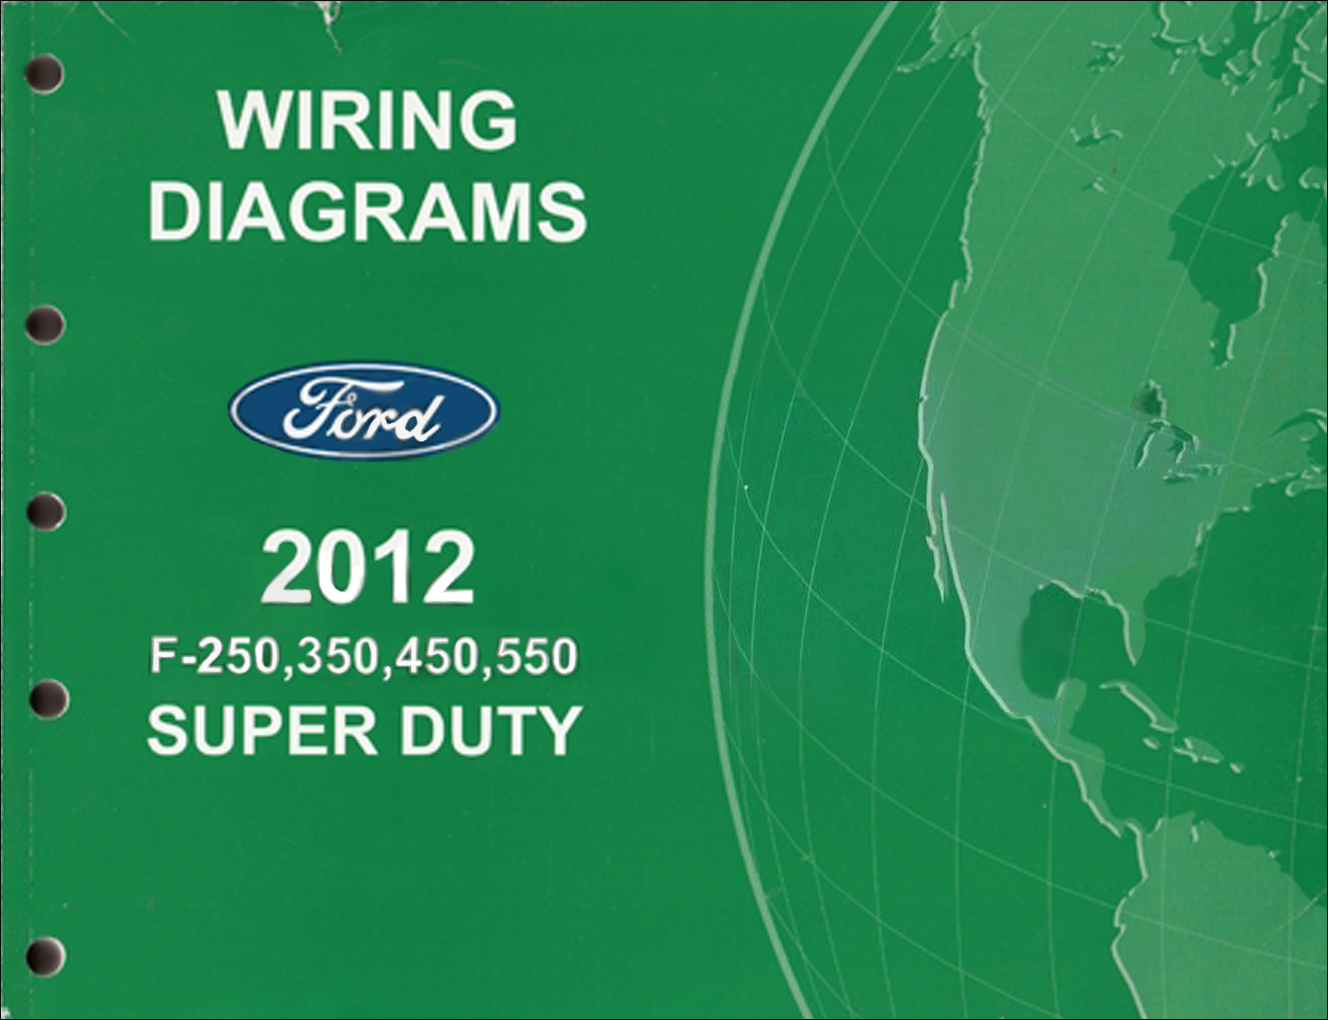 2012 ford f 250 thru 550 super duty wiring diagram manual original 2012 Toyota 4Runner Wiring Diagram